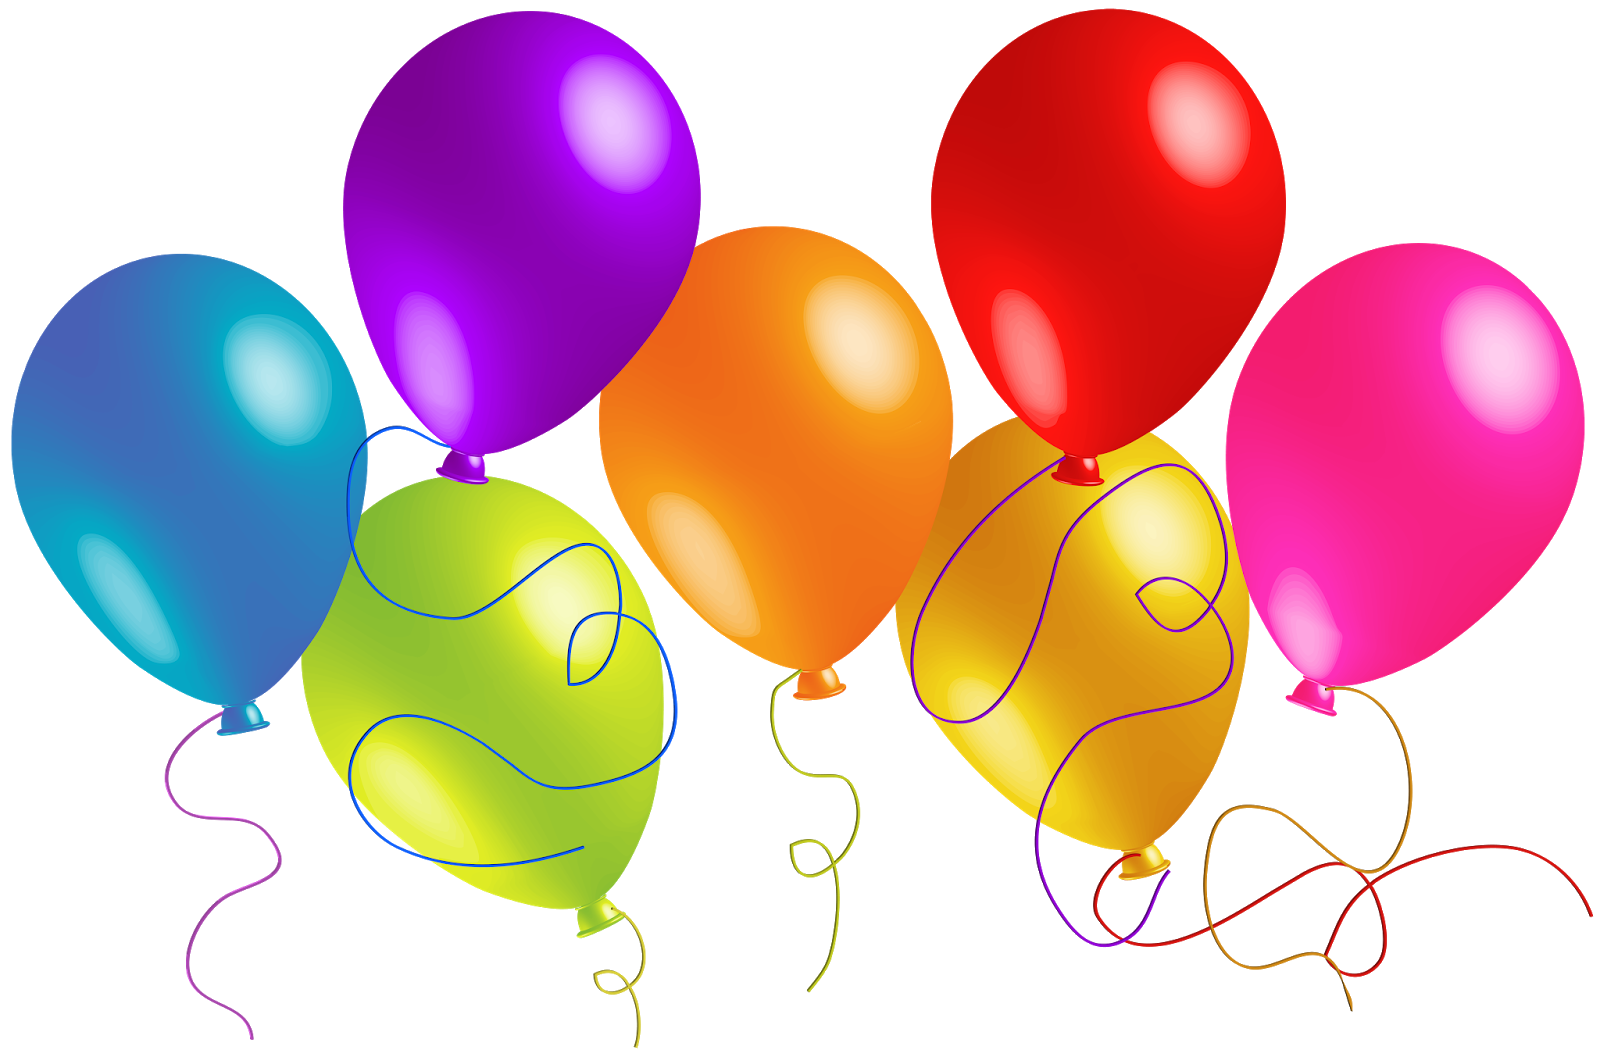 Ballon drawing happiness. Anniversary clipart free large